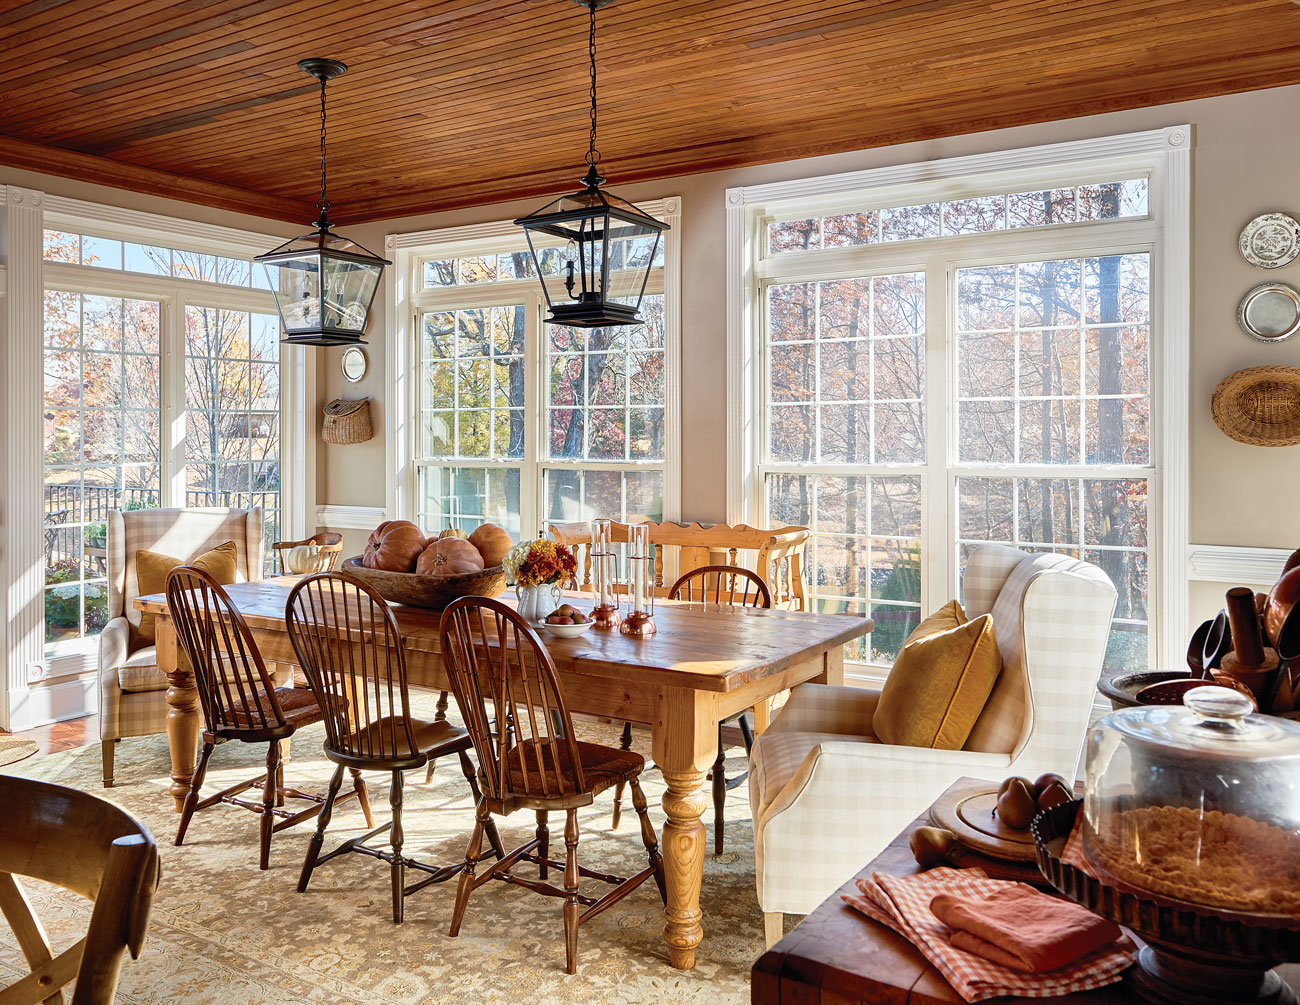 Lake house dining room with pine farm table and hanging lantern pendants overhead surrounded by a wall of windows.